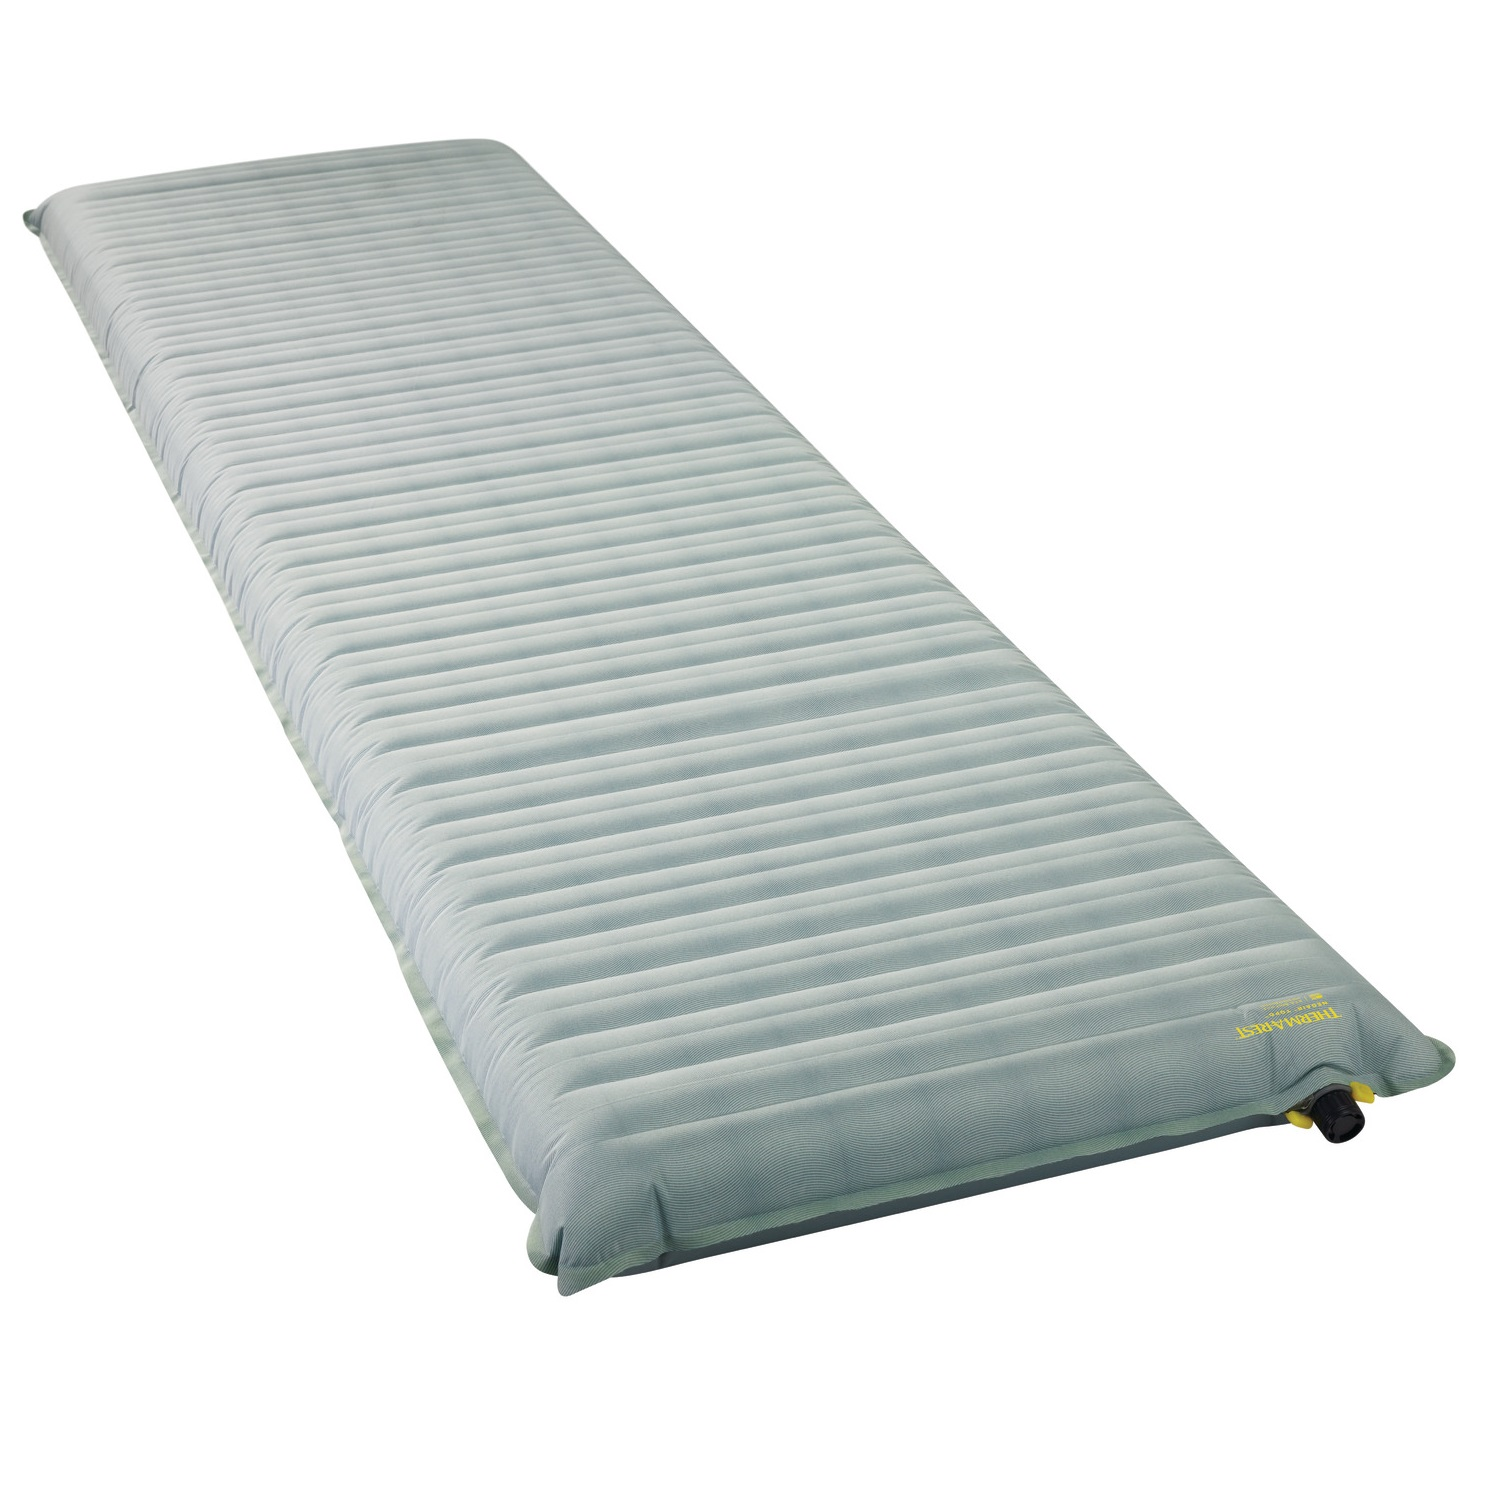 Therm-a-rest Neoair Topo Print Large